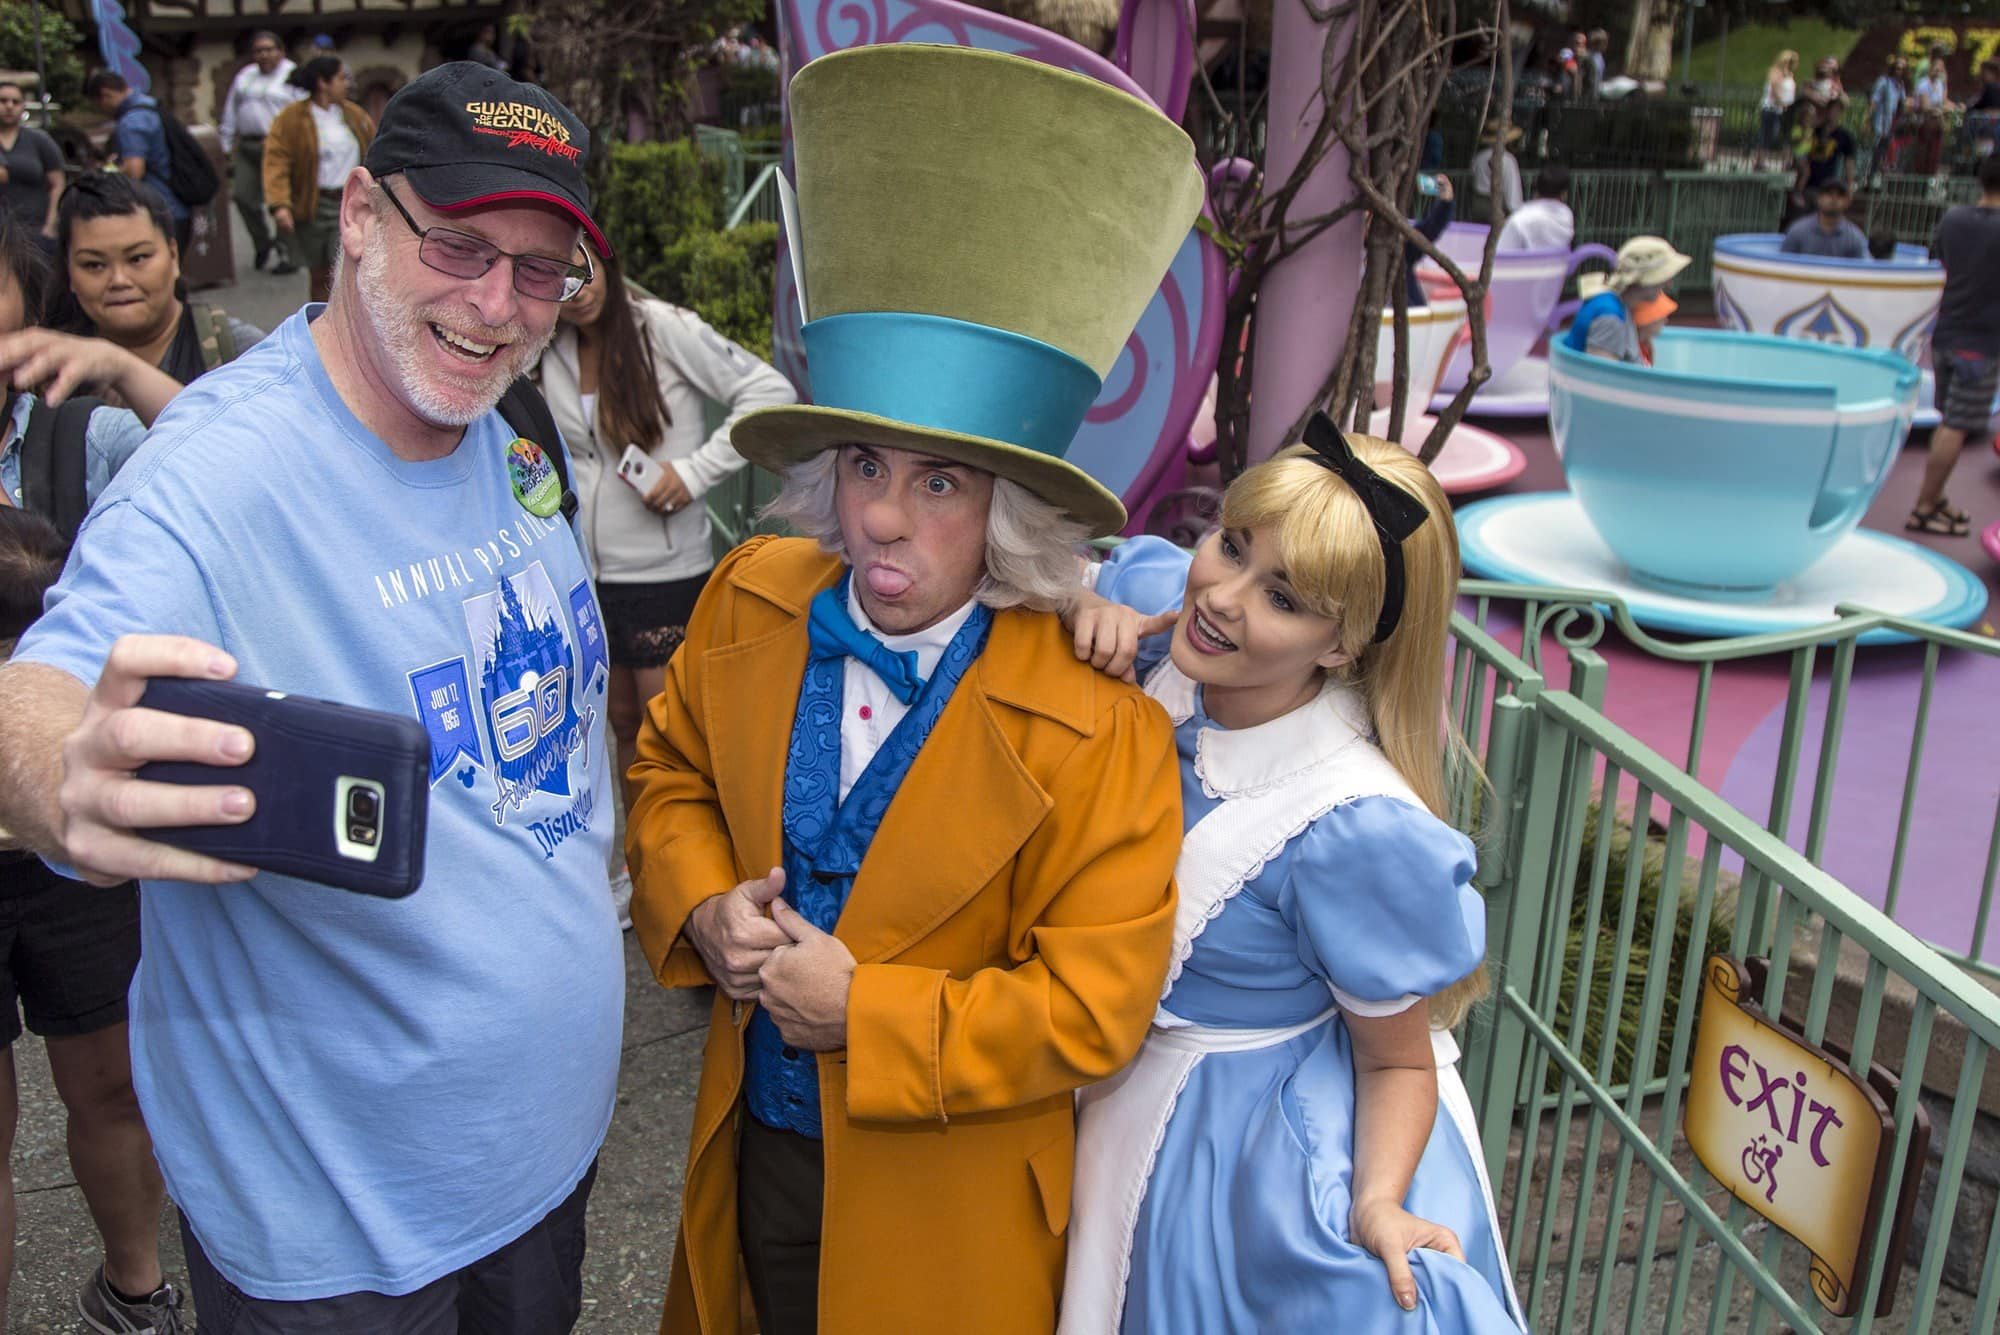 Charge your smart phone battery at Disneyland so you can keep snapping those selfies